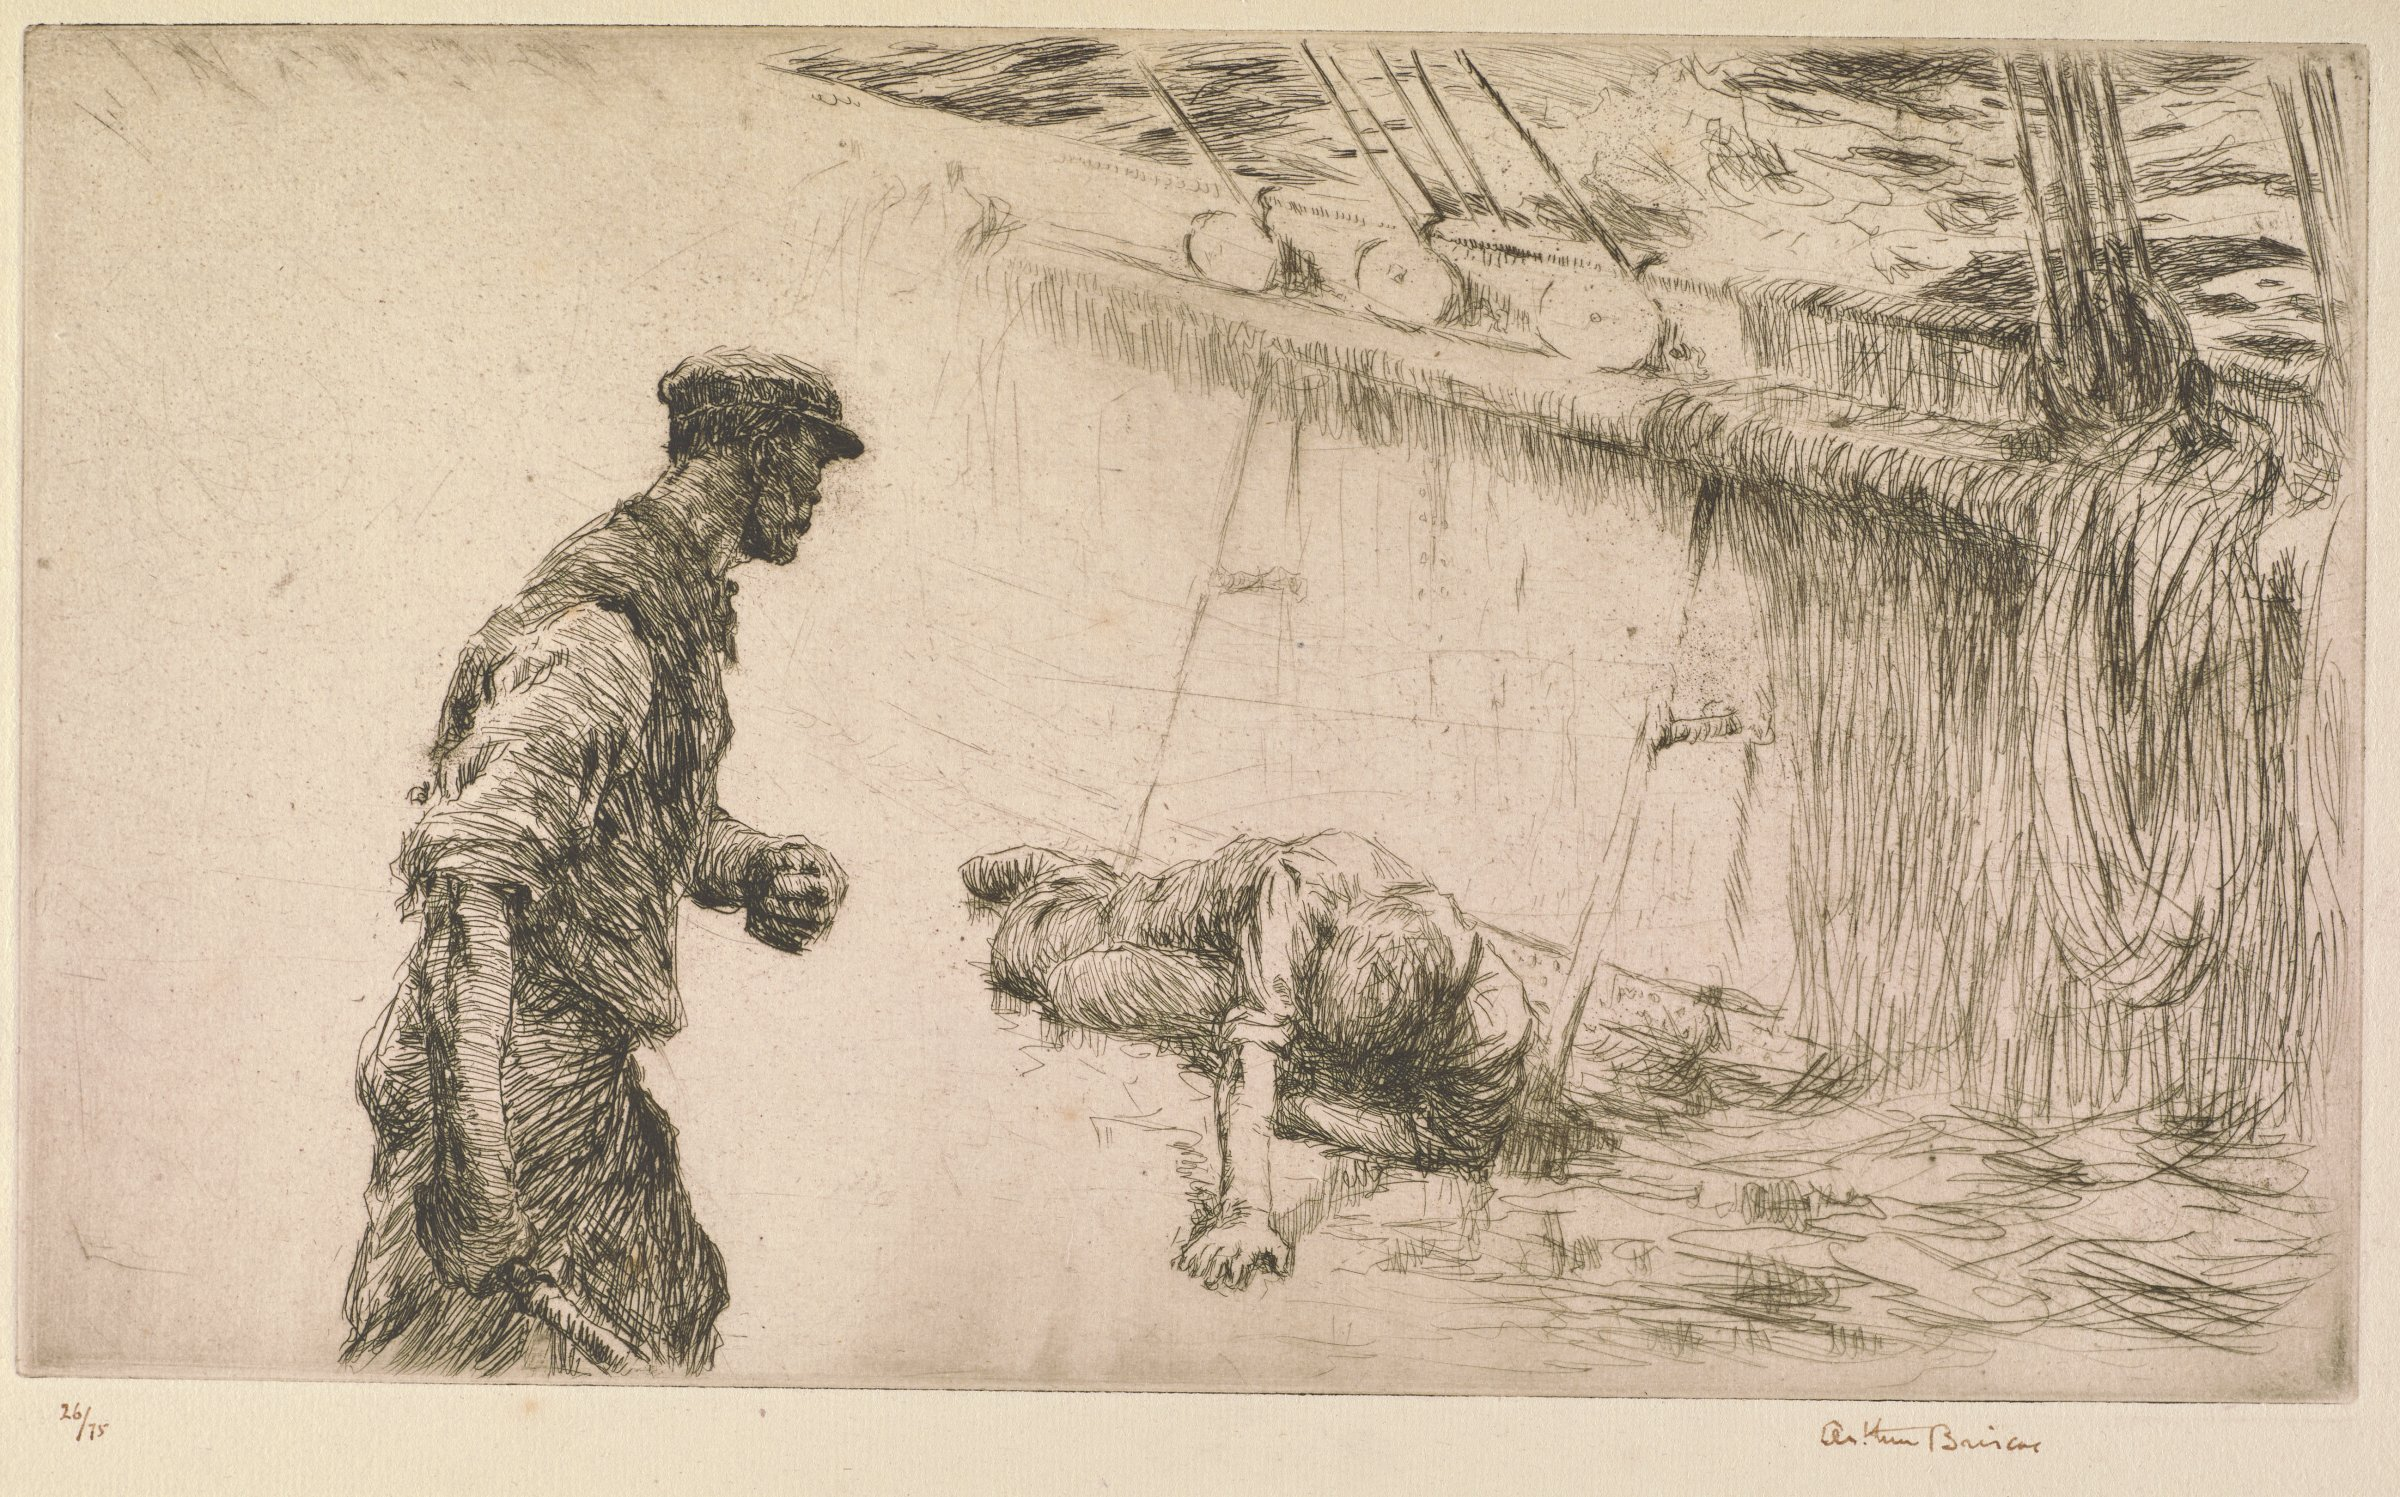 Two sailors engage in a fight. The figure on the right lies holding his stomach. The figure on the left raises his left fist and holds an object in his right hand. The figure on the right lies in front of a background created by the inner side of a ship and ocean water. The figure on the left is framed by void space.